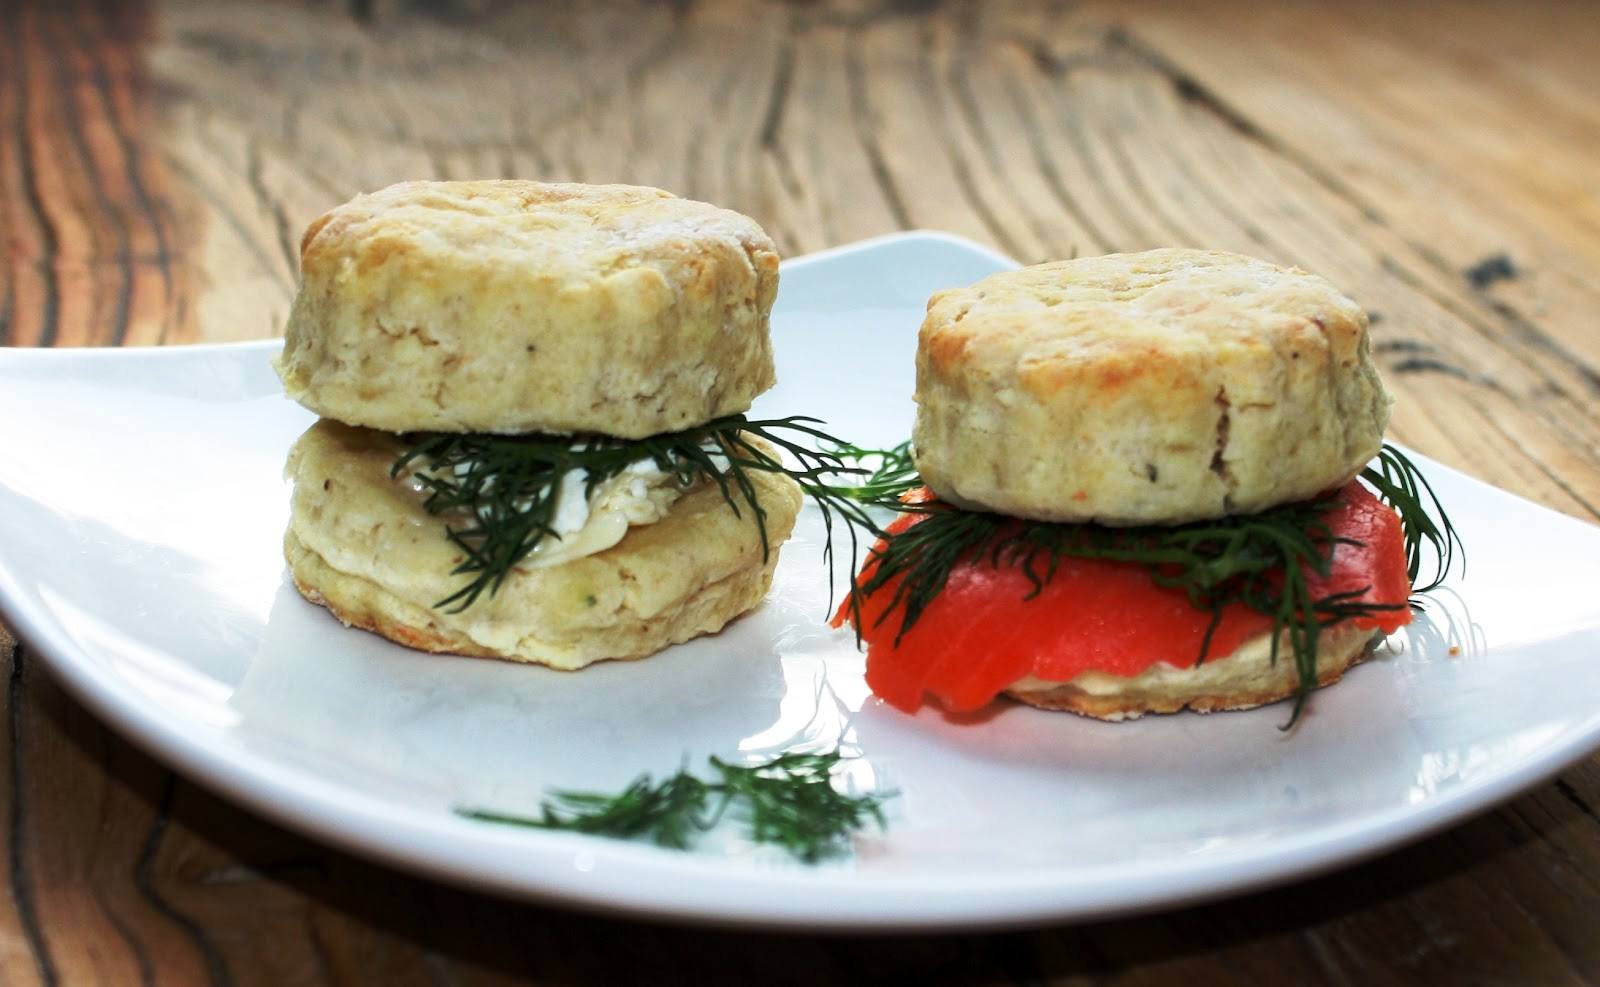 ... : Goat Cheese and Black Pepper Biscuits with Smoked Salmon and Dill